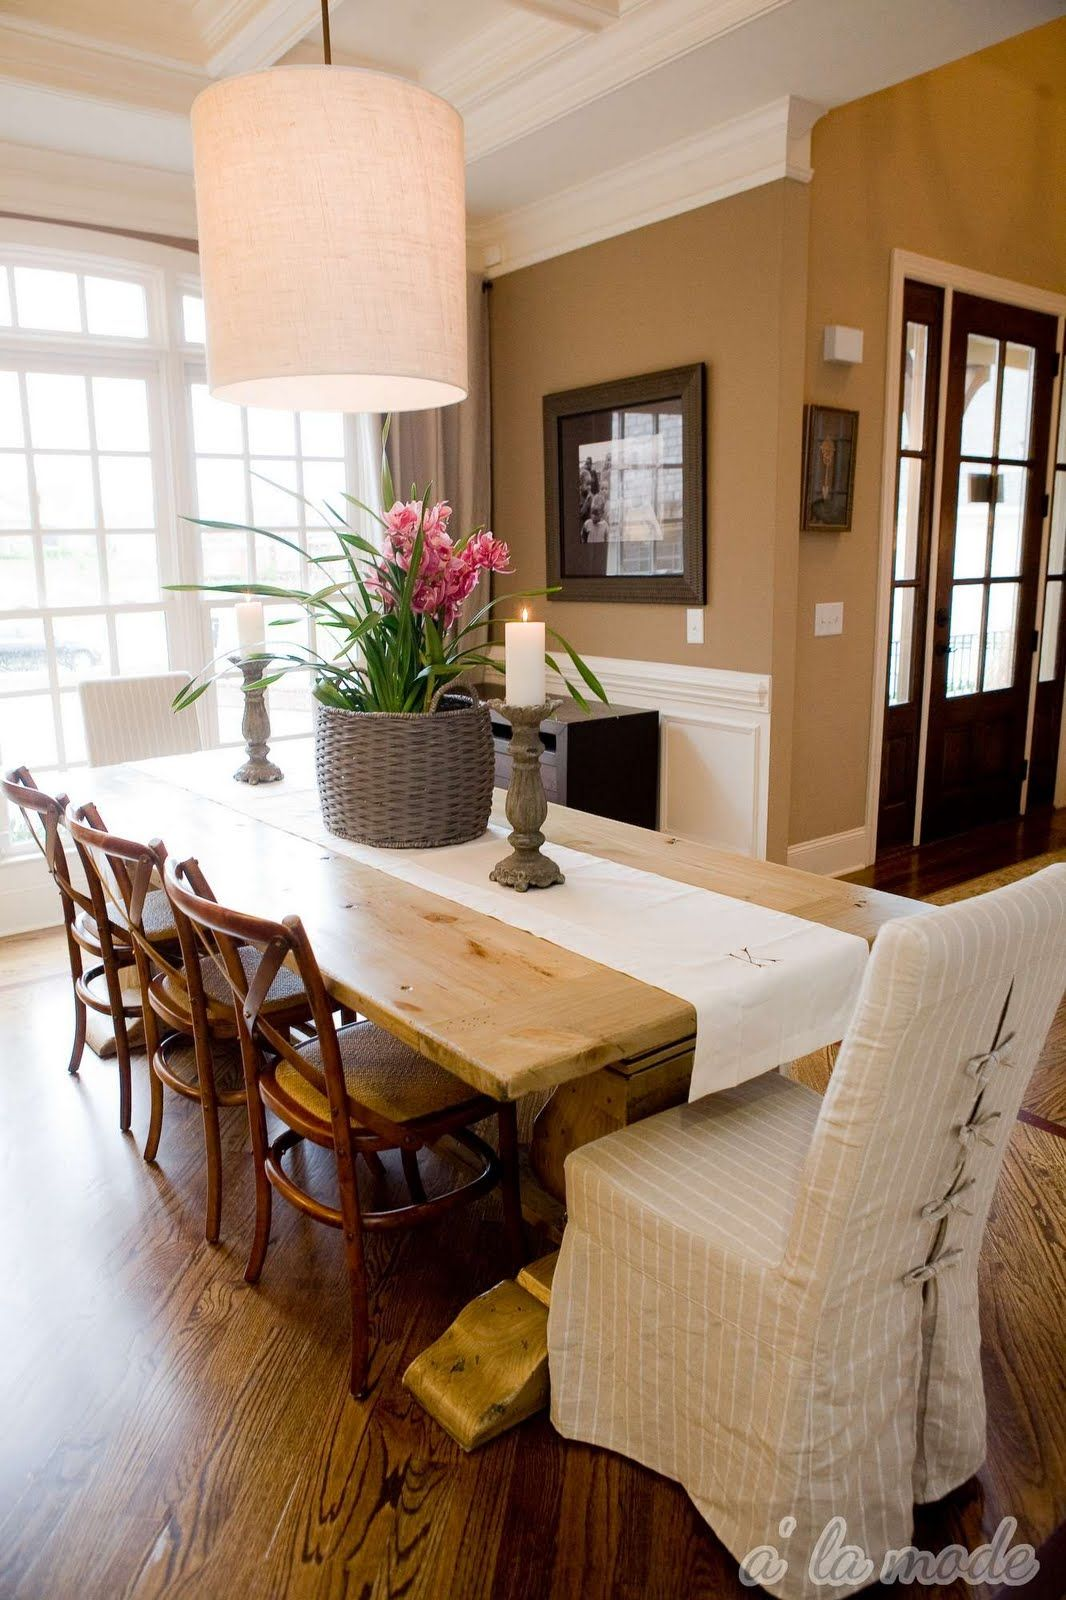 Dining Room Paint Ideas Pinterest: Room Decorating Before And After Makeovers In 2019